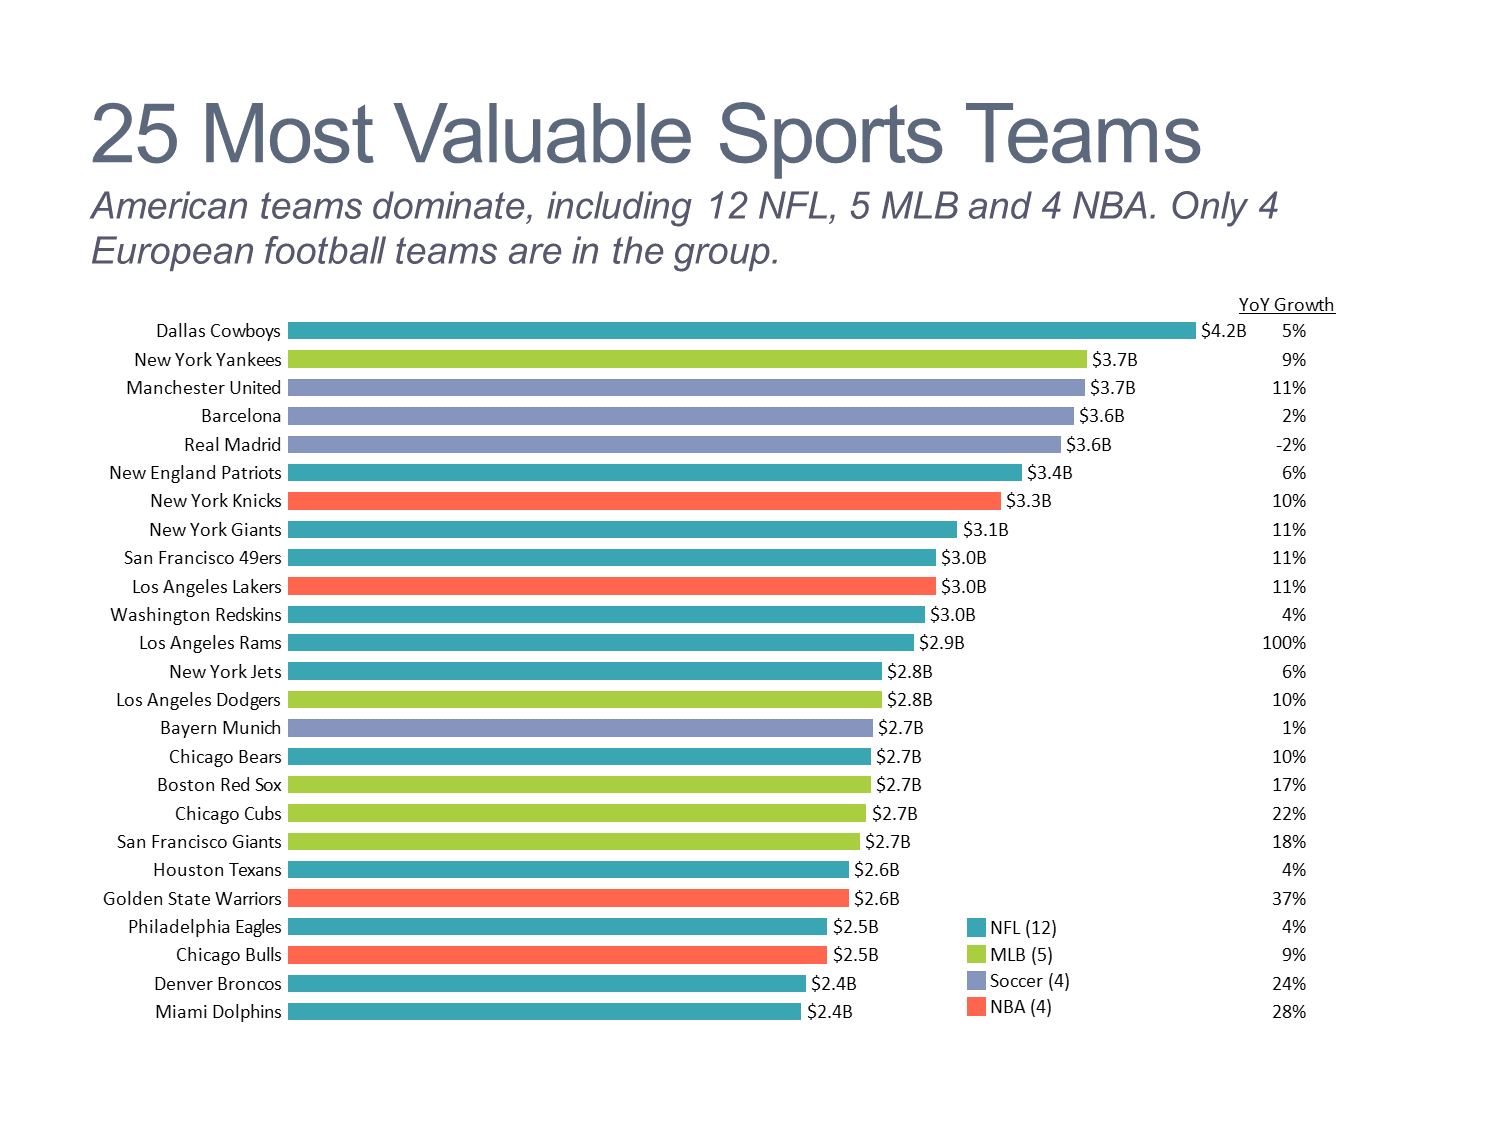 Most Valuable Sports Team Stacked Bar Chart